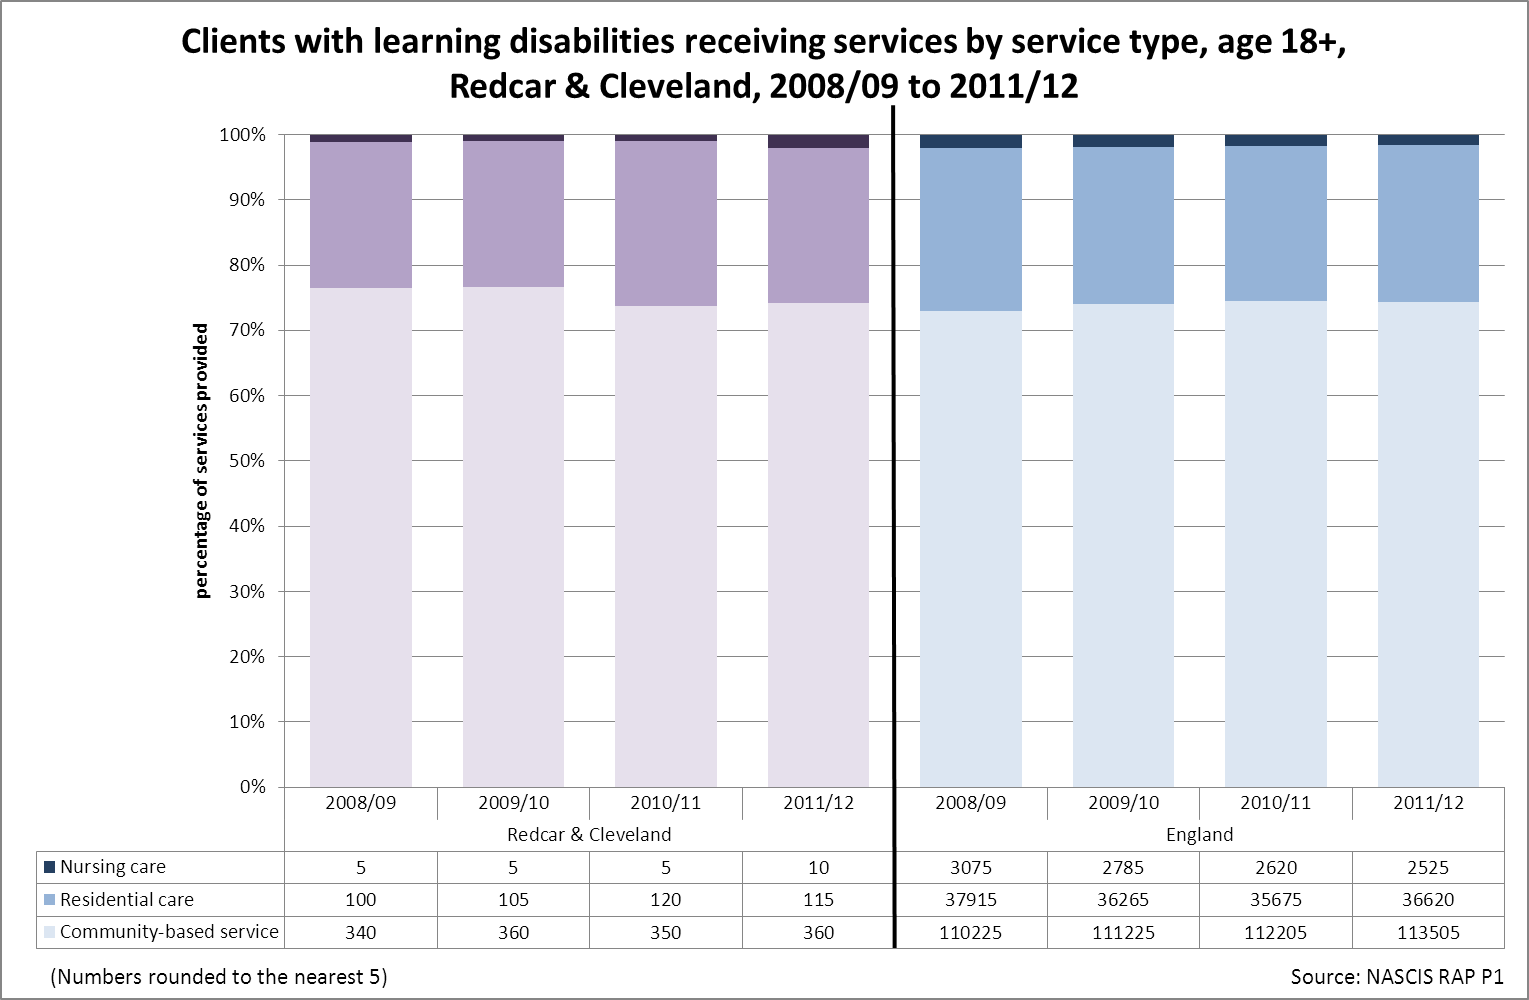 Service type and learning disabilities, R&C, 2008/09 to 2011/12